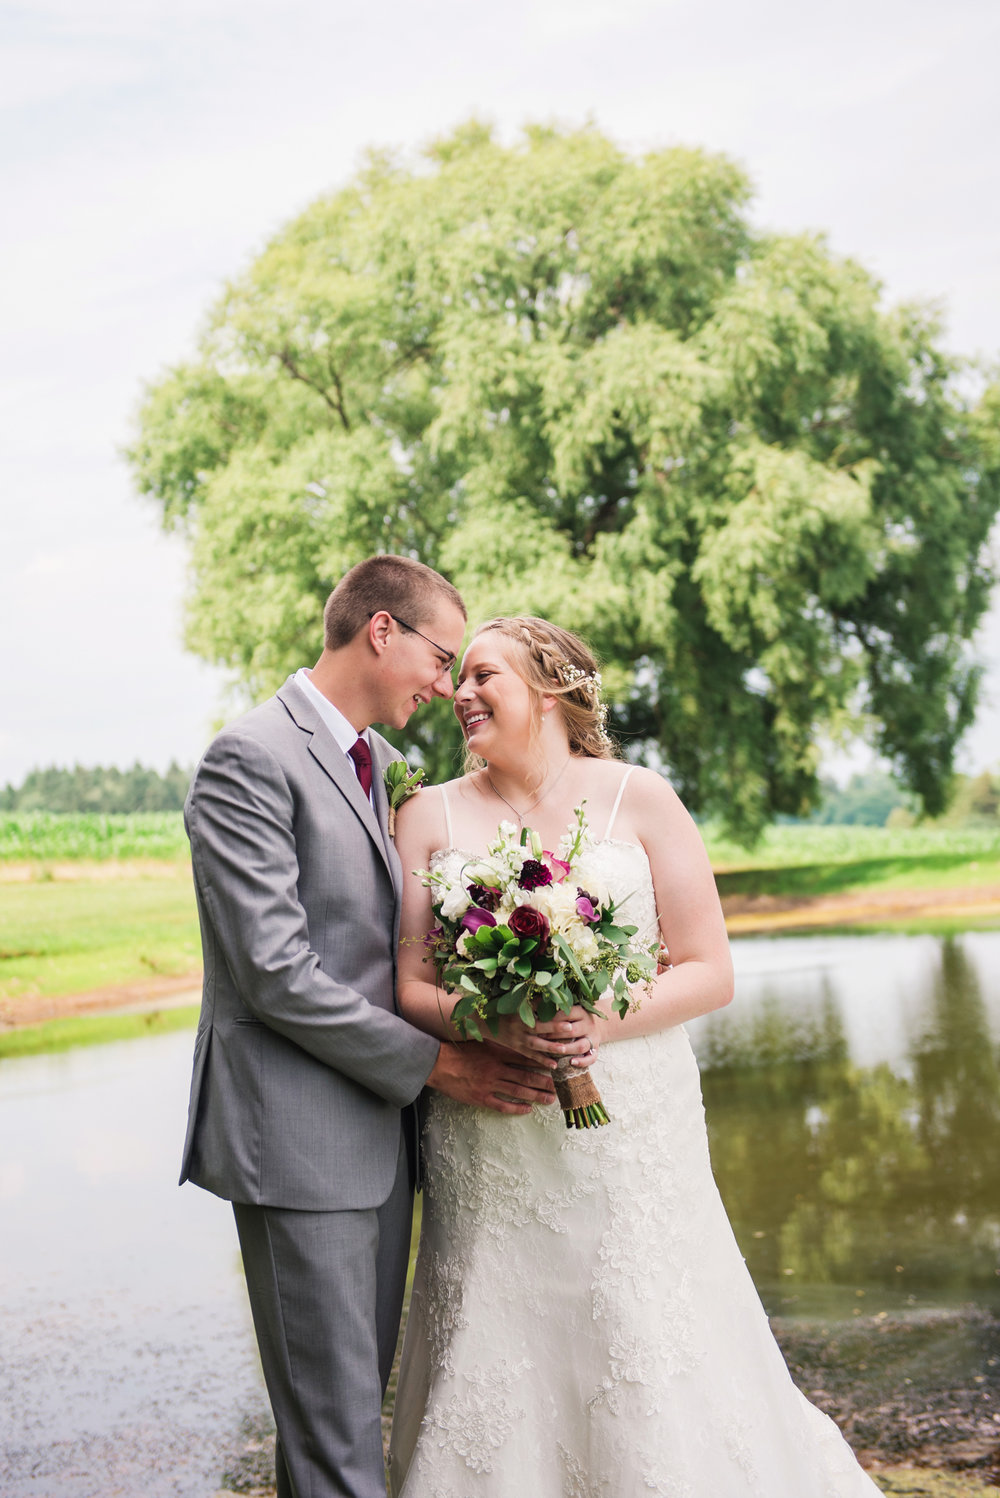 JILLSTUDIO_MKJ_Farms_Central_NY_Wedding_Rochester_NY_Photographer_DSC_8452.jpg